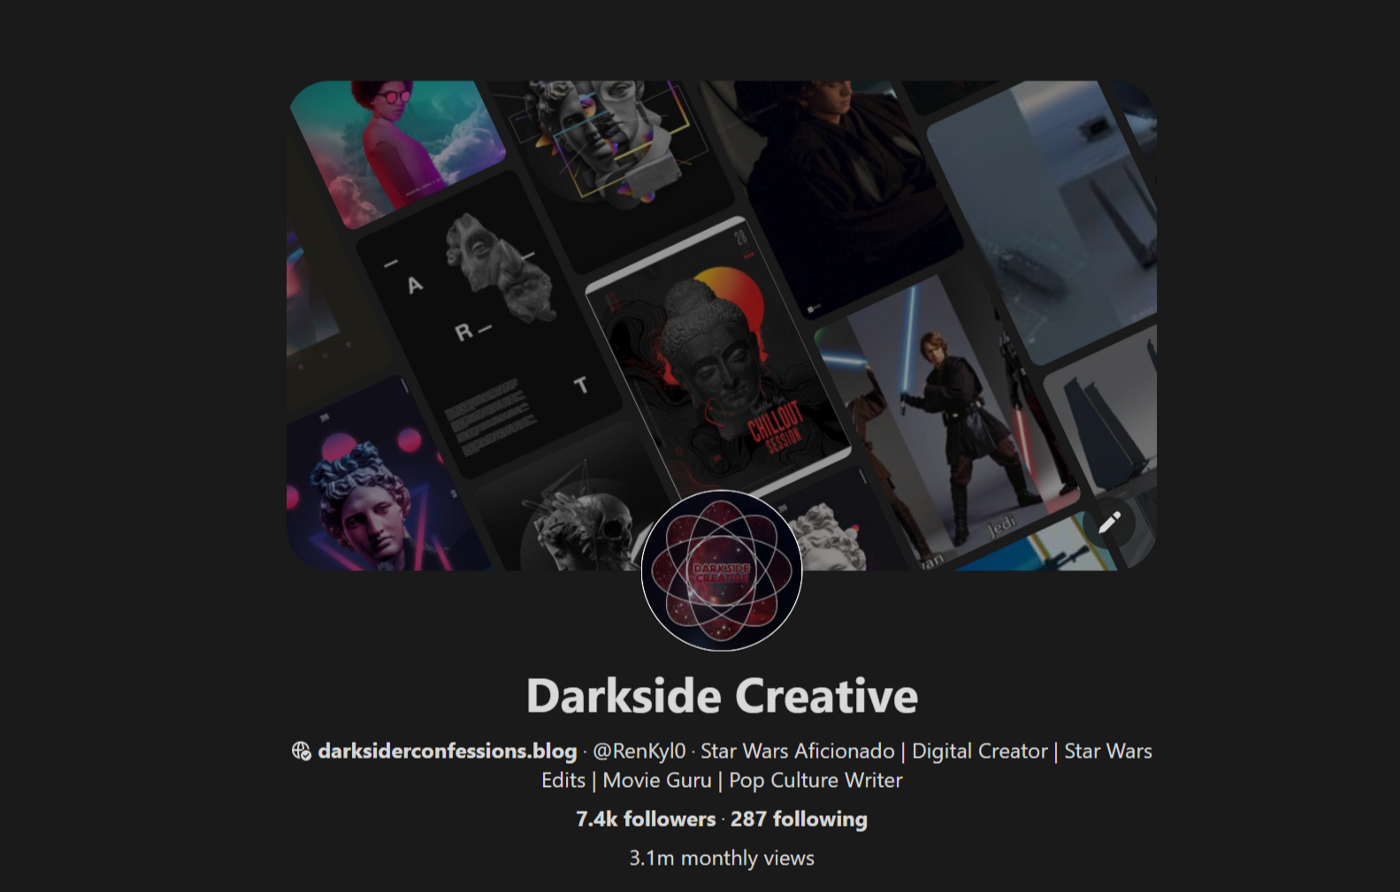 Darkside Creative's Pinterest Profile owned by Julie Gray